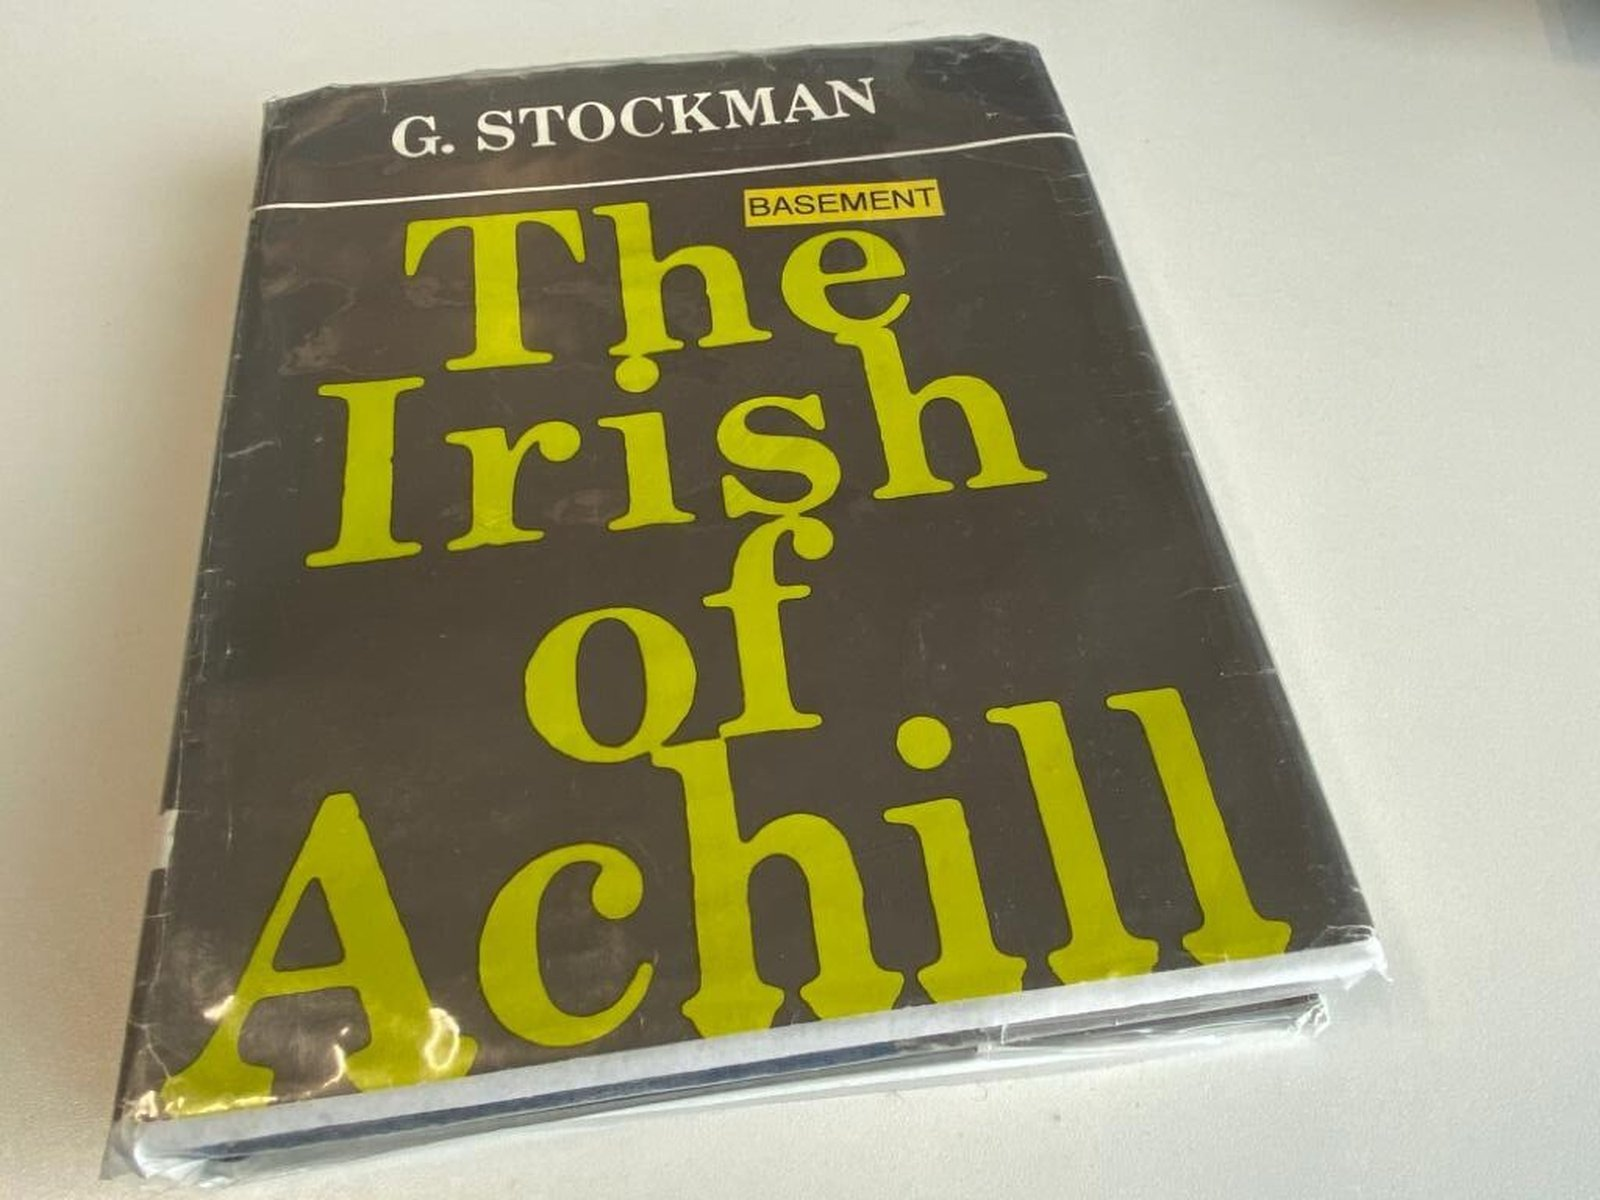 Image - Gearóid Stockman's book on the Irish dialect of Achill (1974)